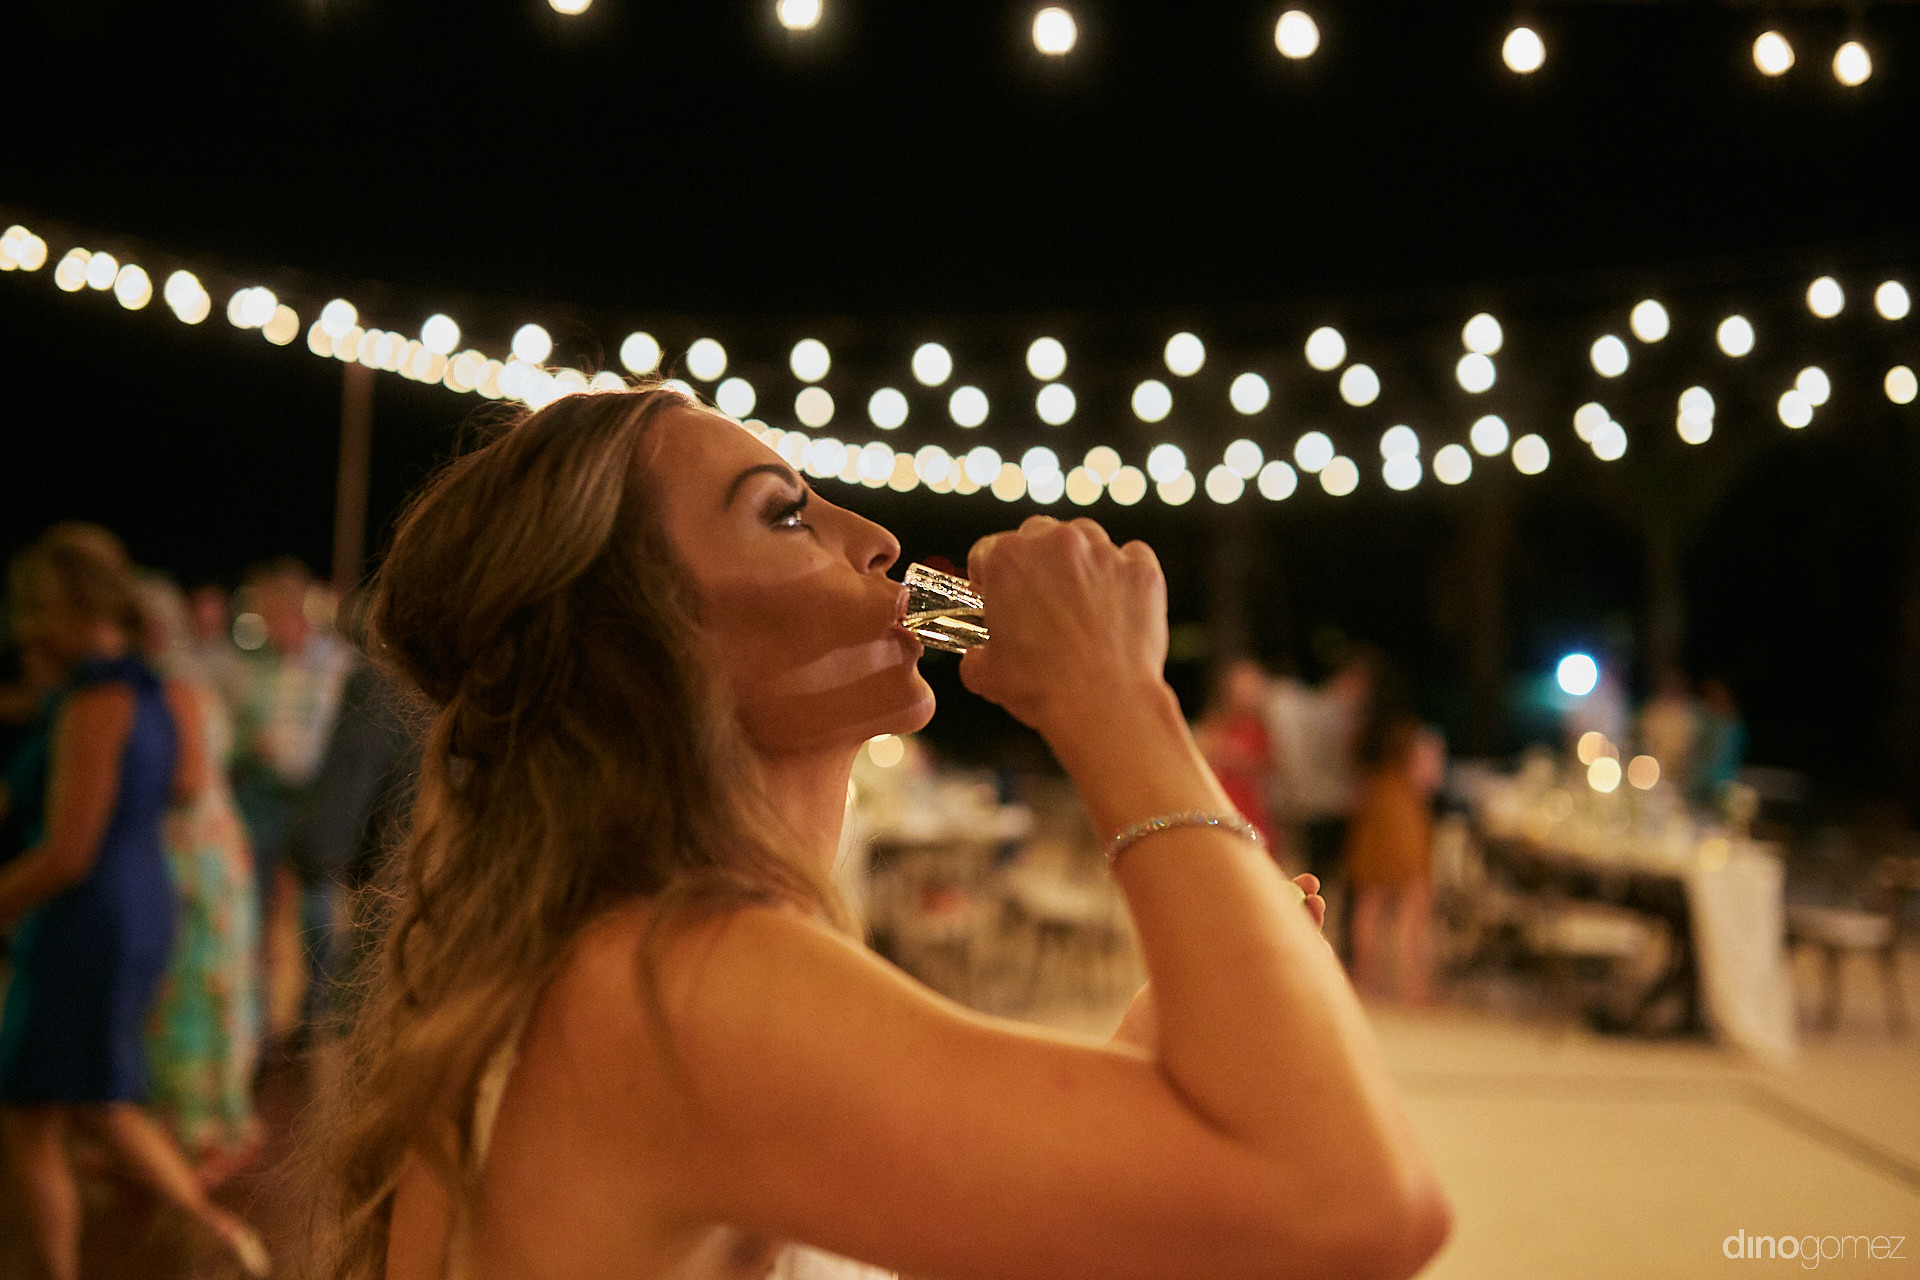 Cabo San Lucas Wedding Planner Reviews - Luxury Wedding Photographer In Cabo Dino Gomez - C&T